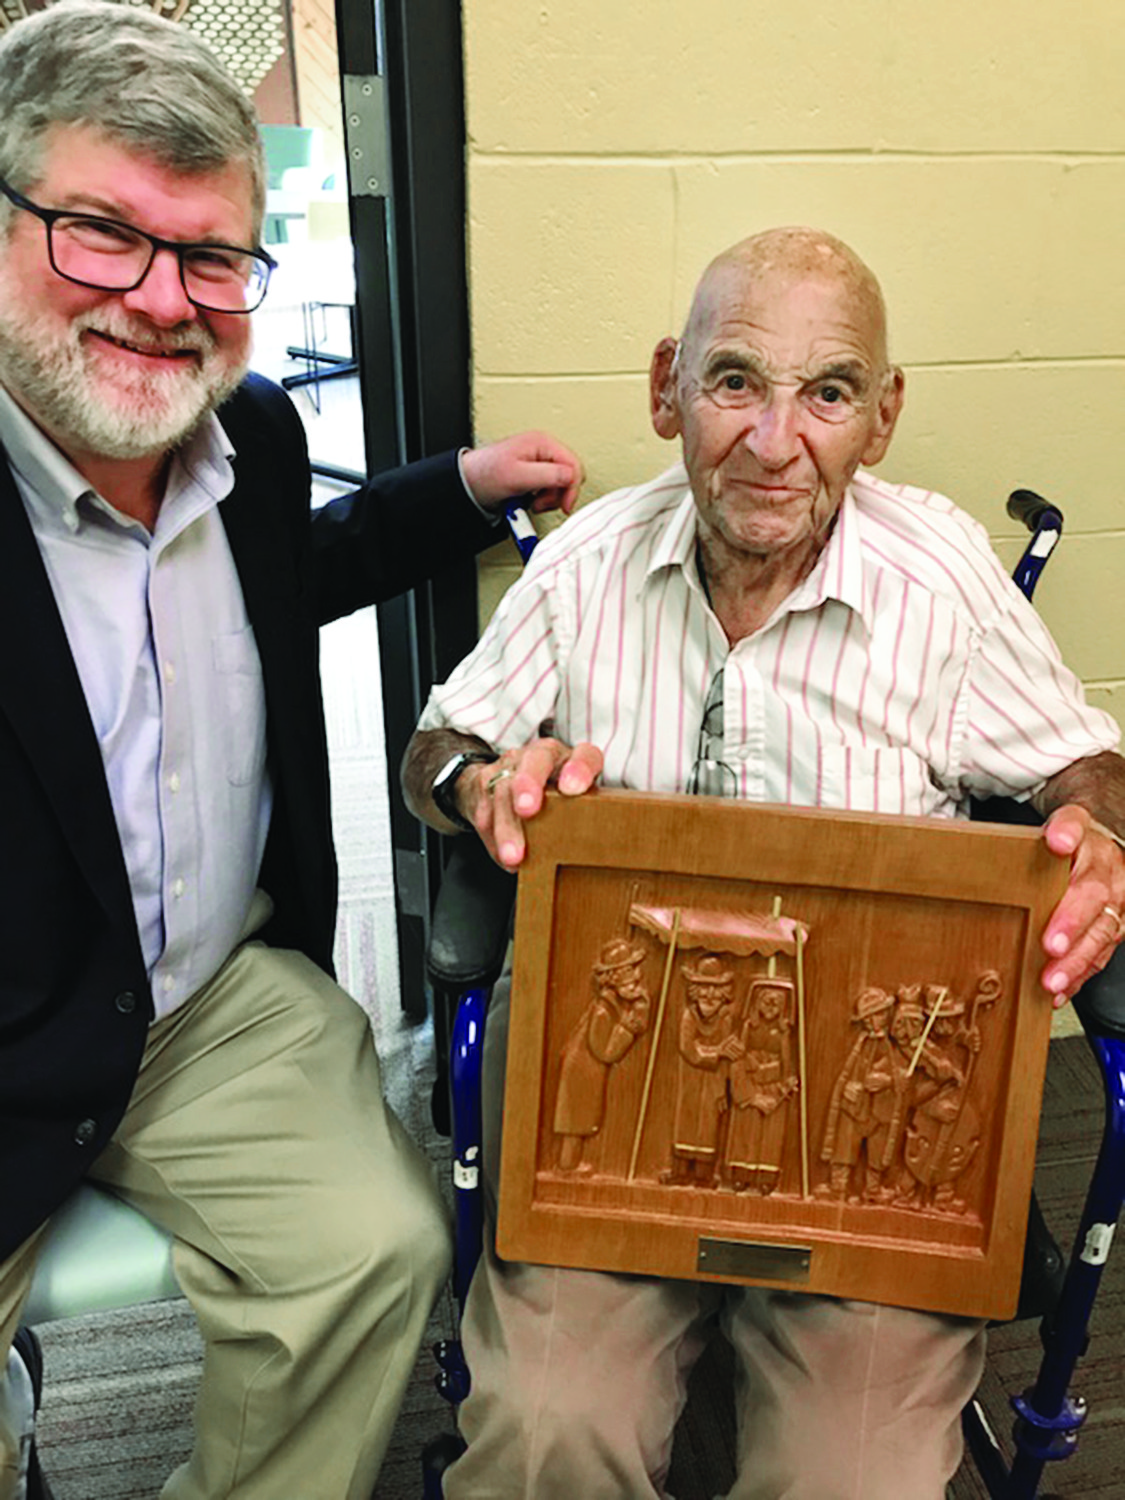 Rabbi Jeffrey Goldwasser with Sam Nelson who is holding his wood carving.